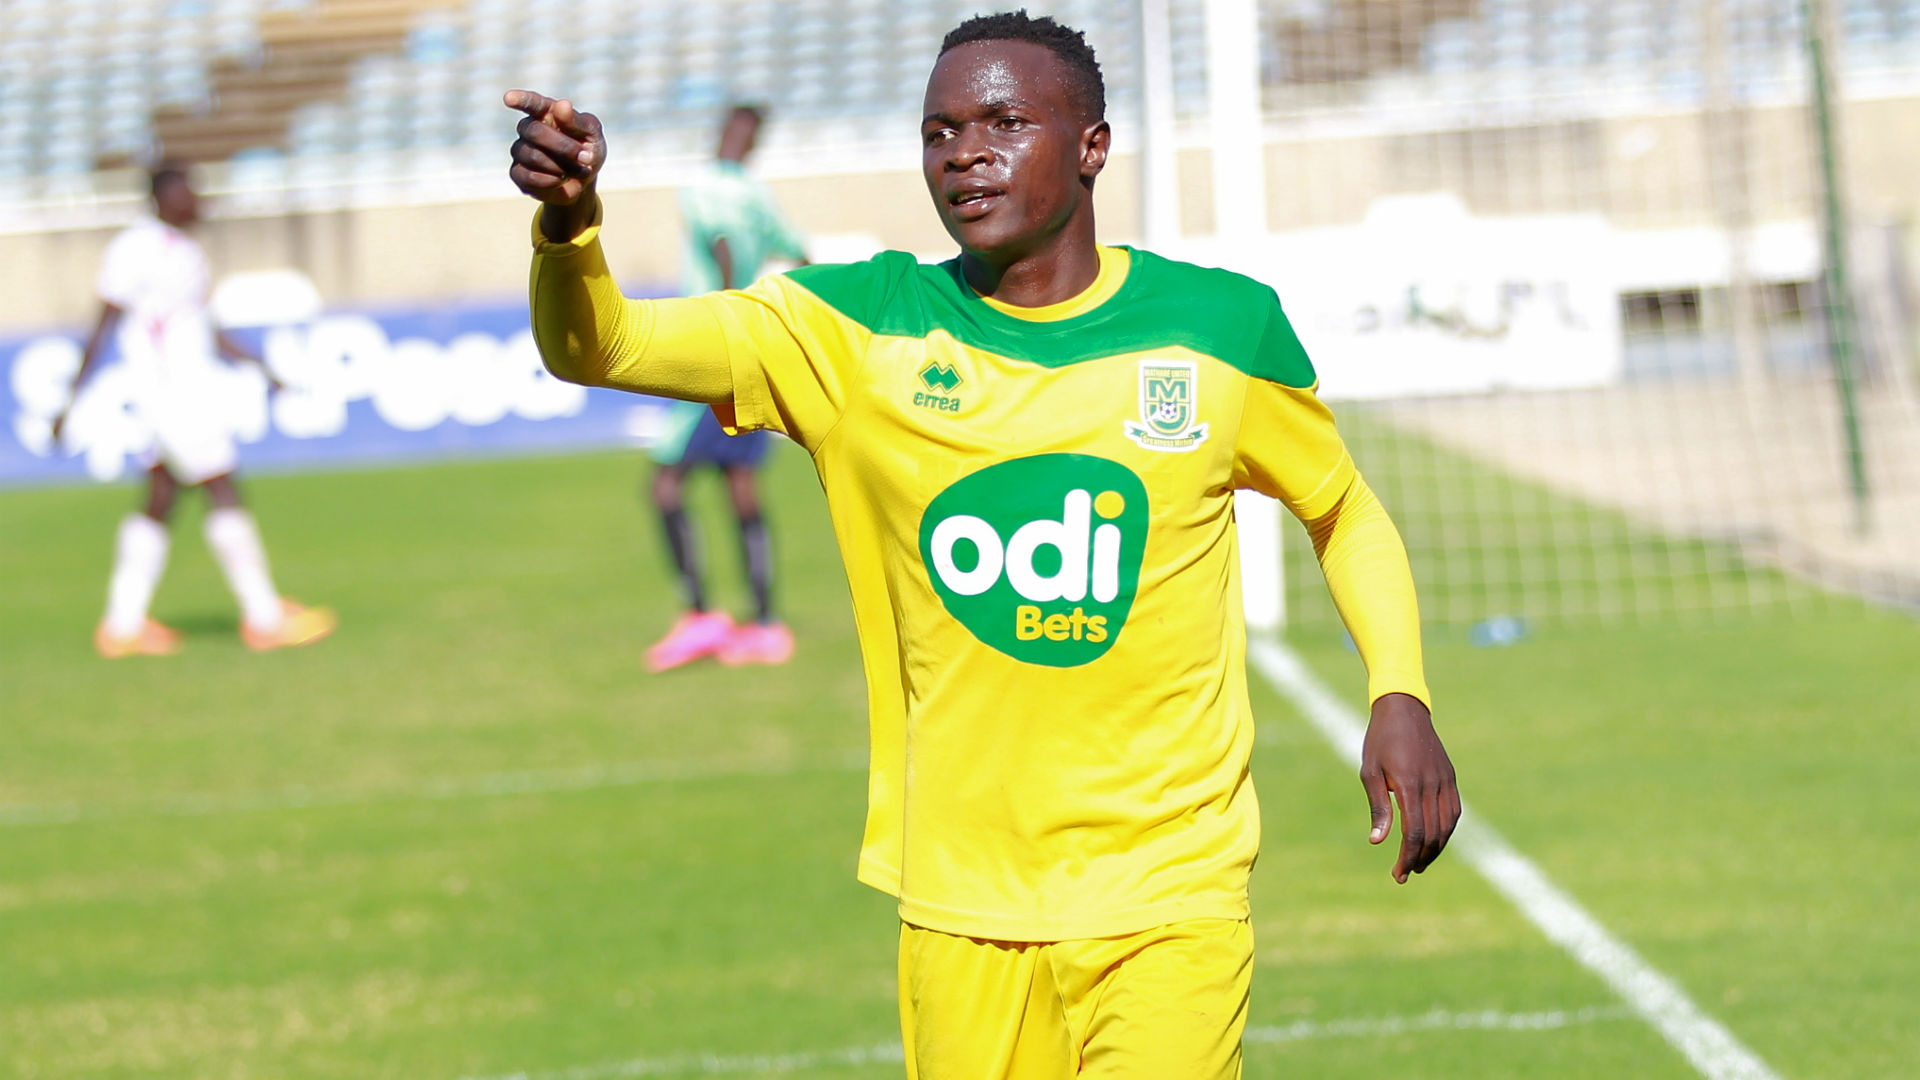 Mathare United's prolific scorer Cliff Nyakeya also in the Harambee Stars squad